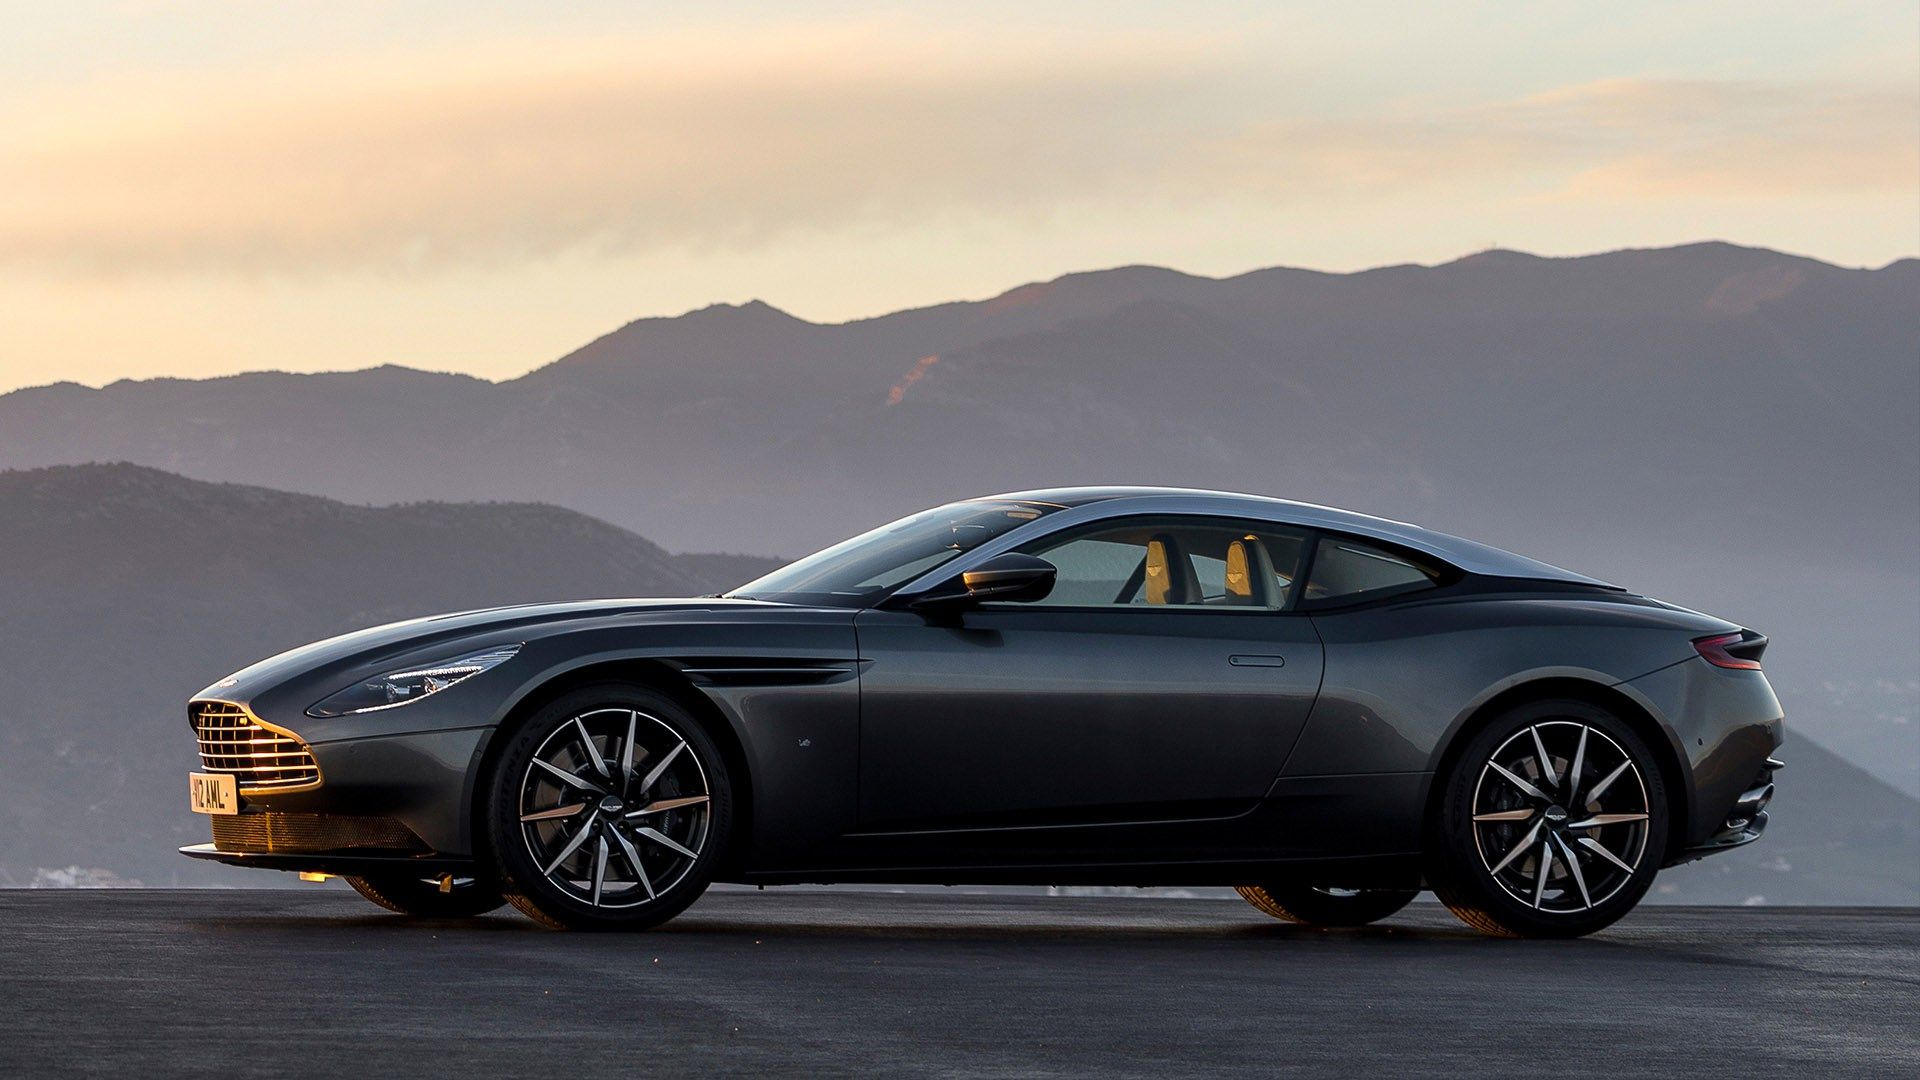 aston martin will let you take the db11 out for a spin. in tuscany